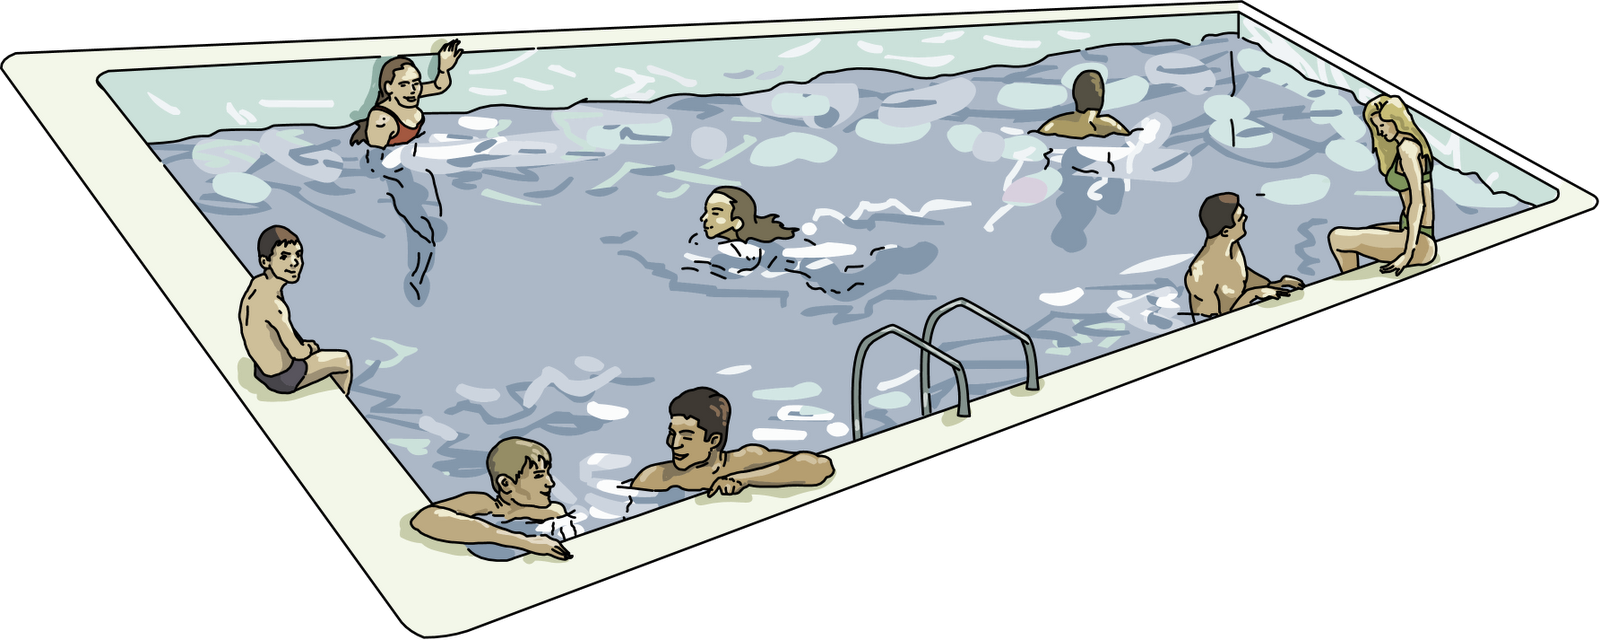 Inground pool clipart 3